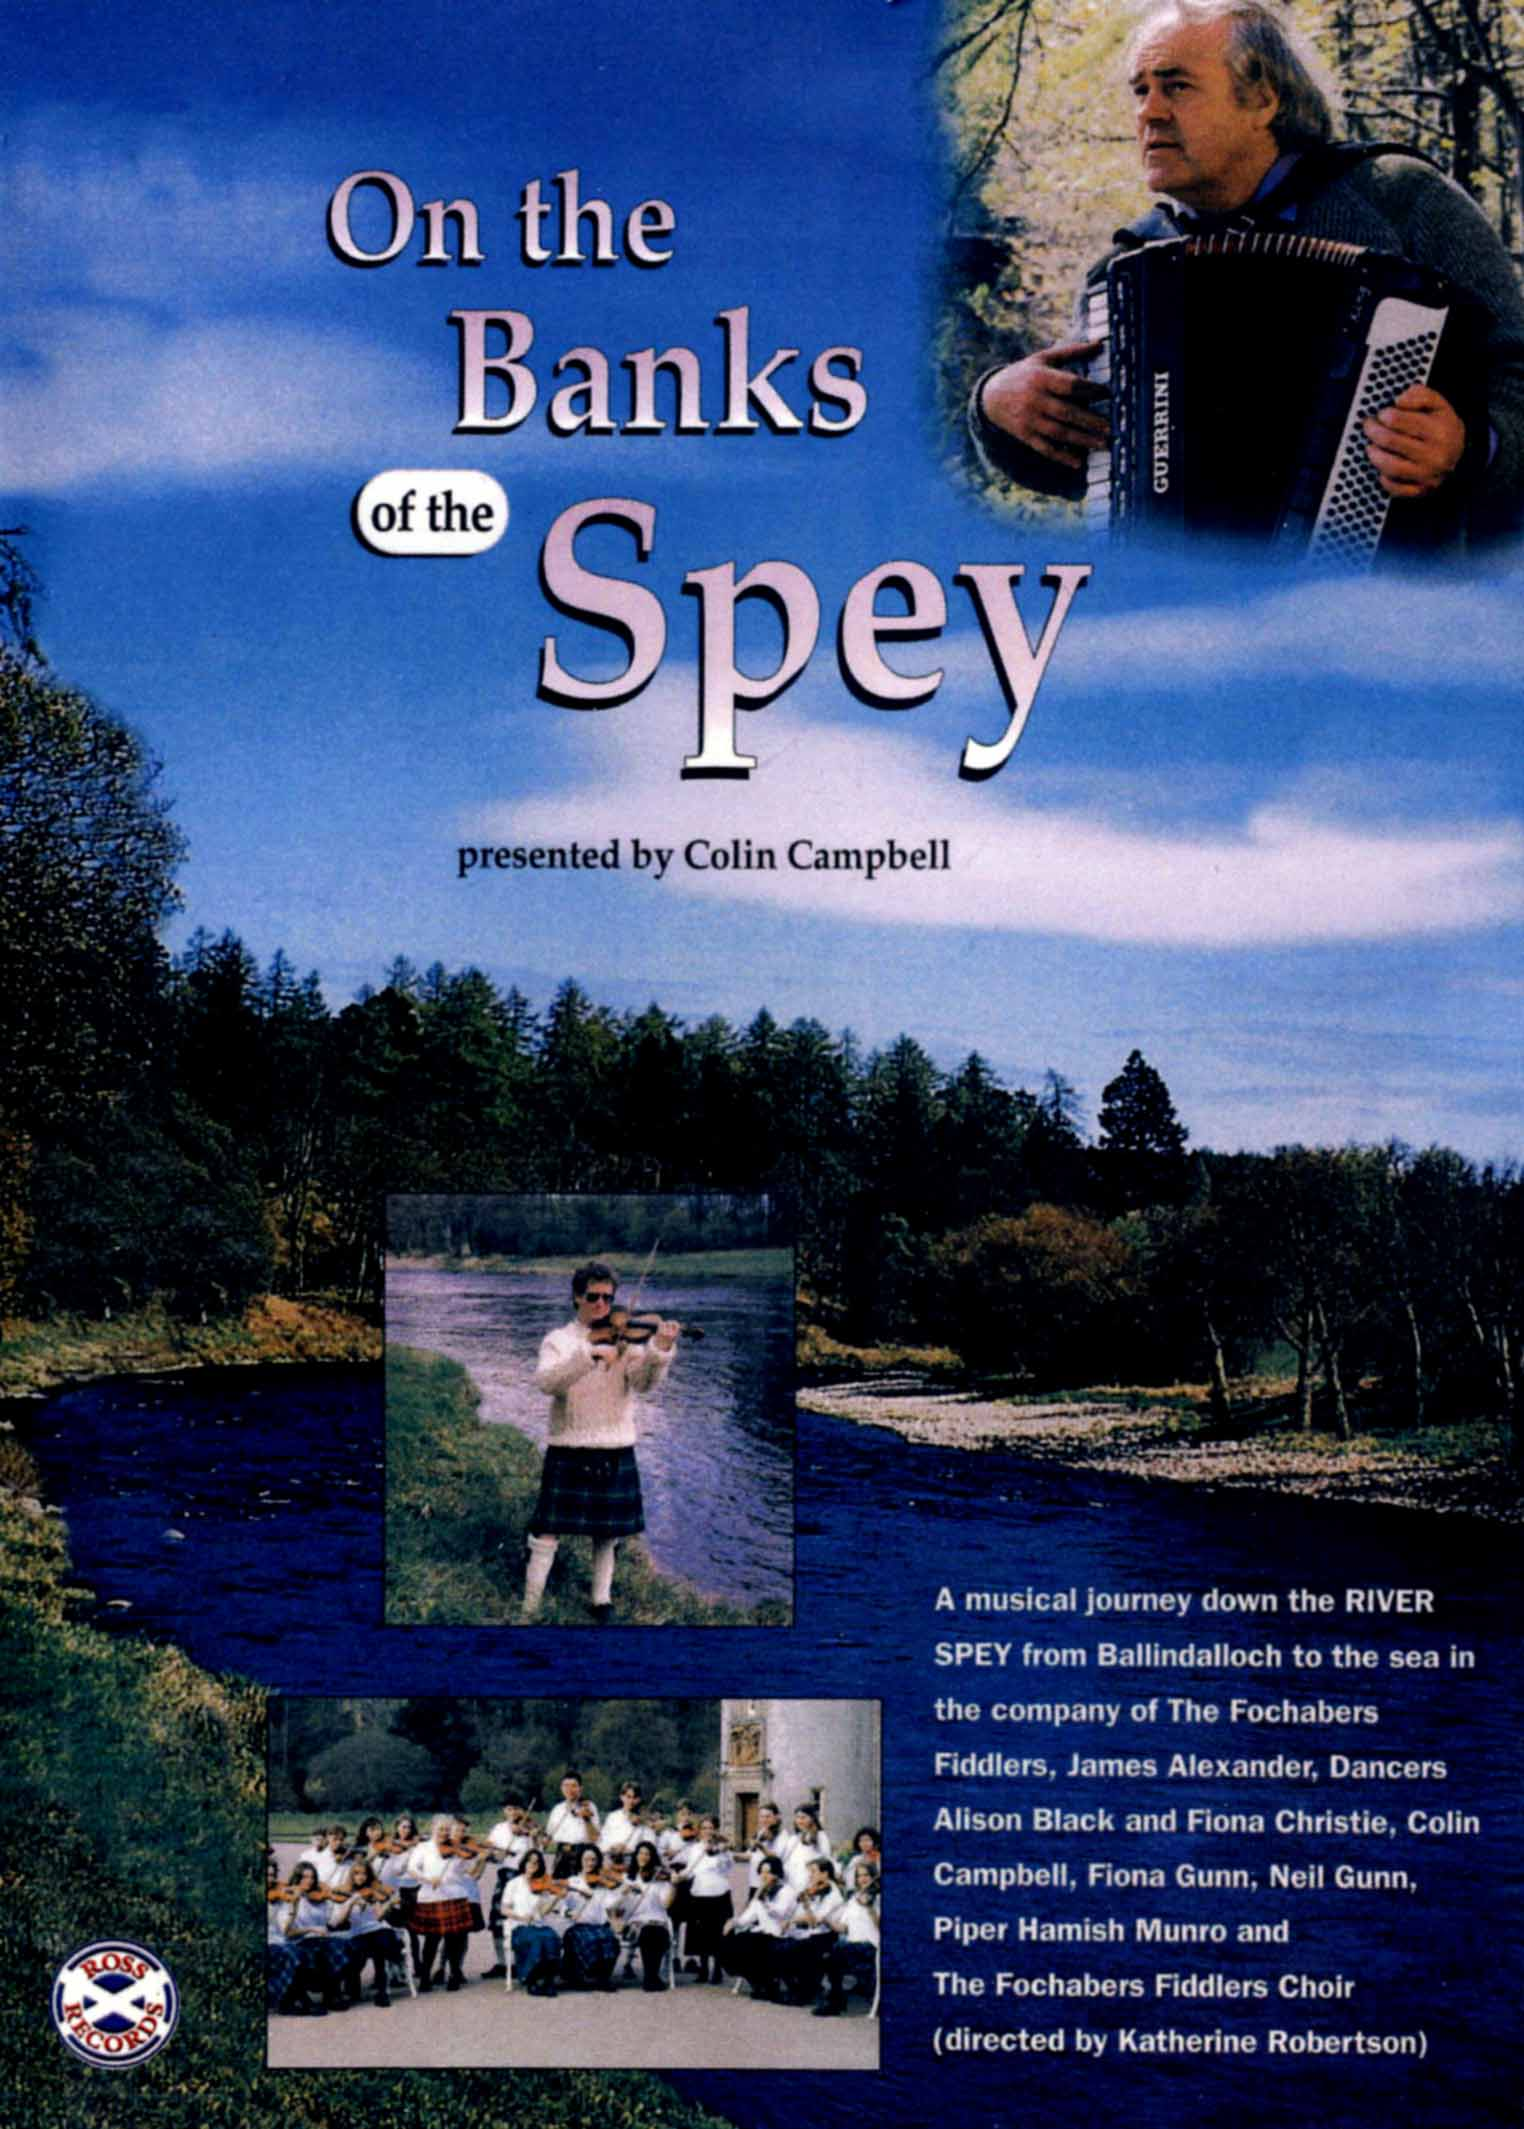 On The Banks of the Spey